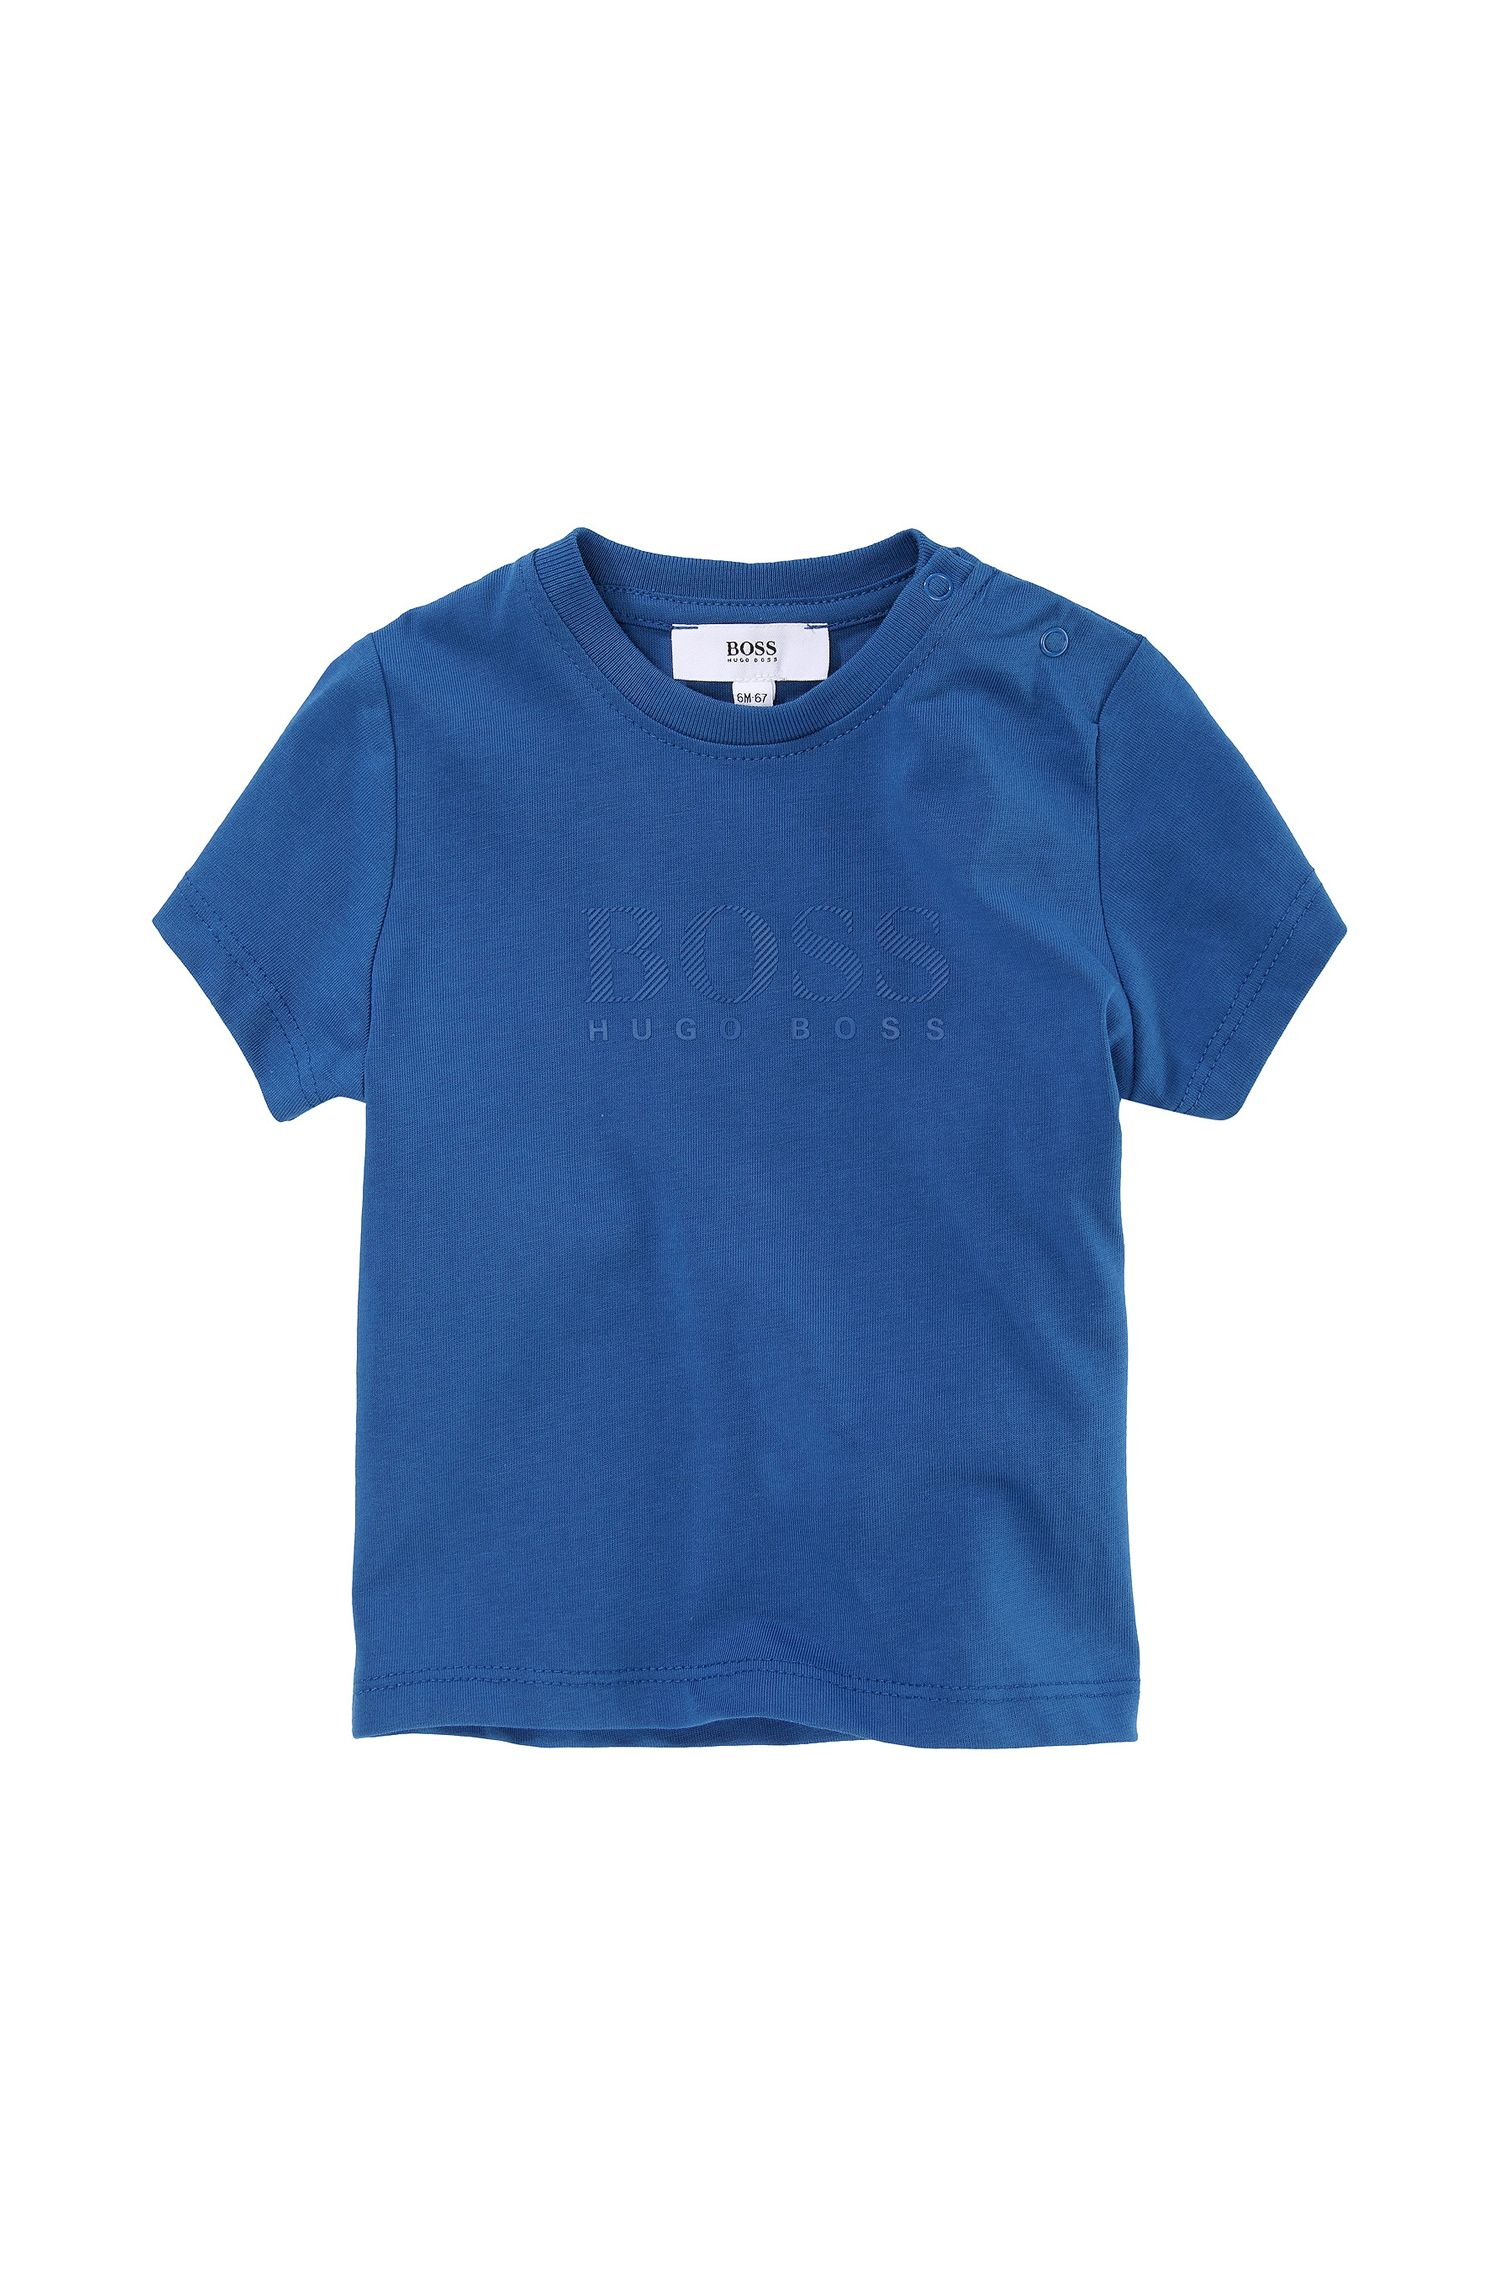 'J05277' | Toddler Cotton Jersey Tonal Logo Print T-Shirt